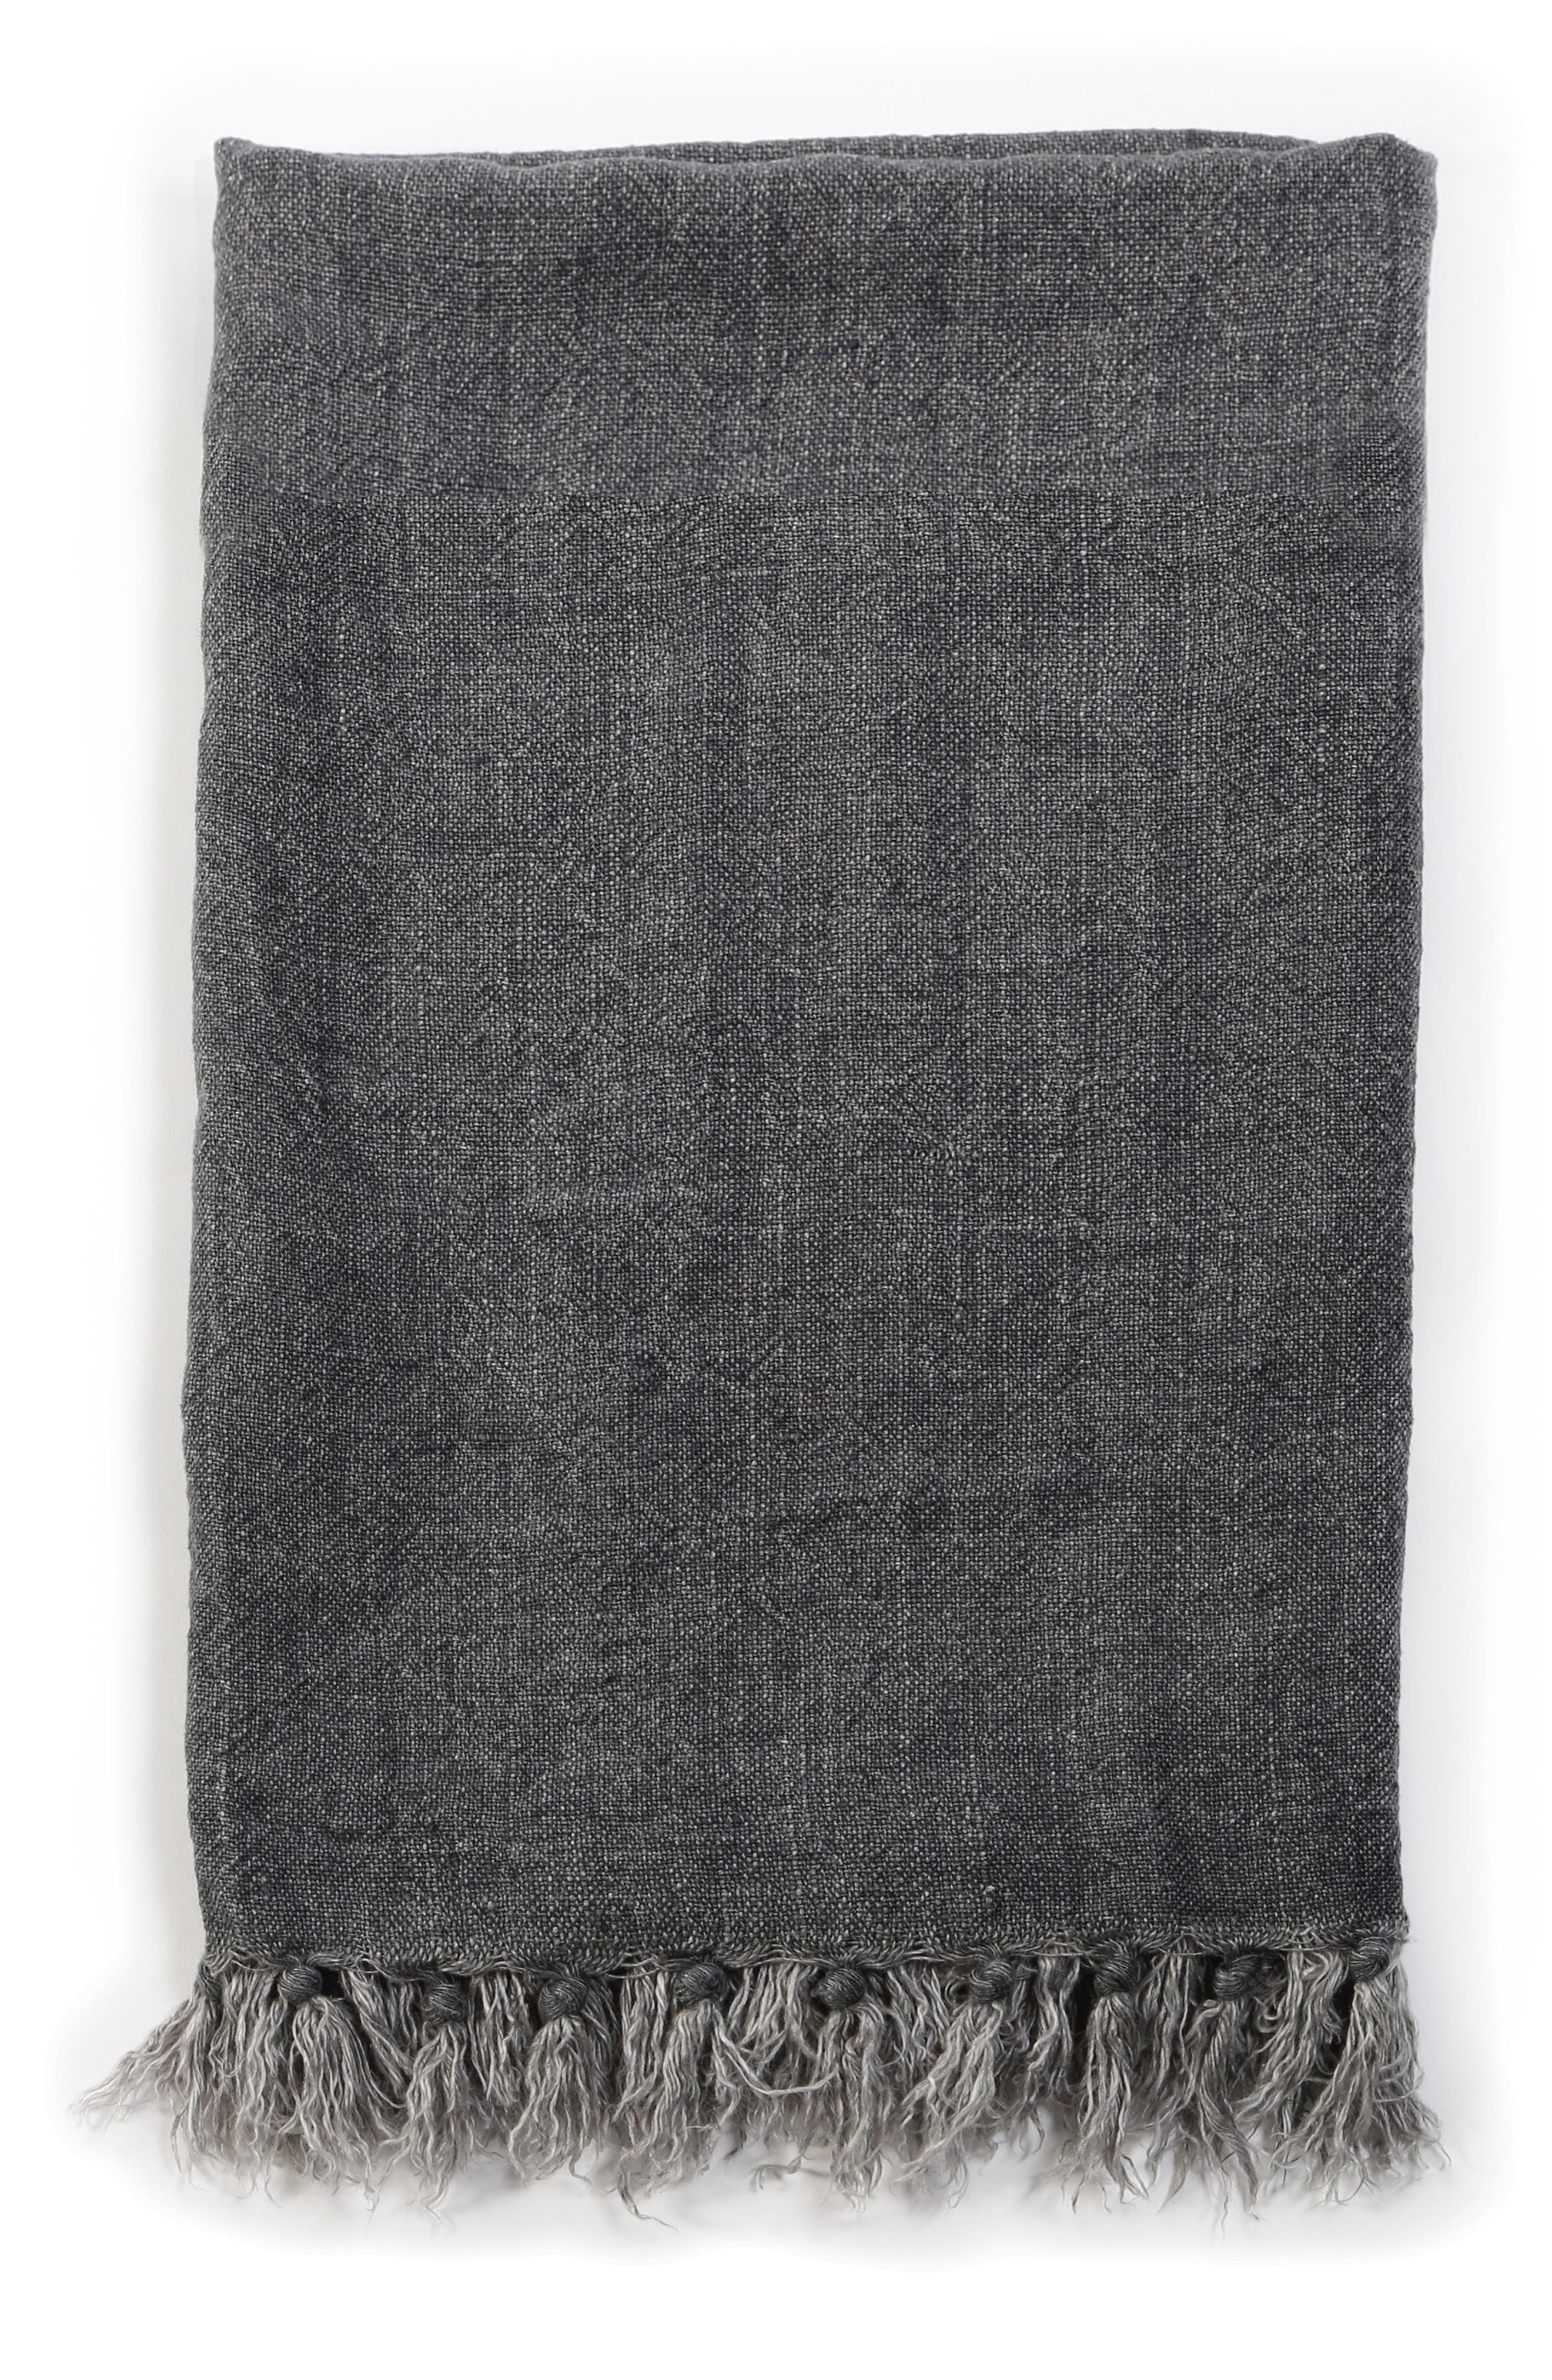 POM POM AT HOME Montauk Throw Blanket, Main, color, CHARCOAL